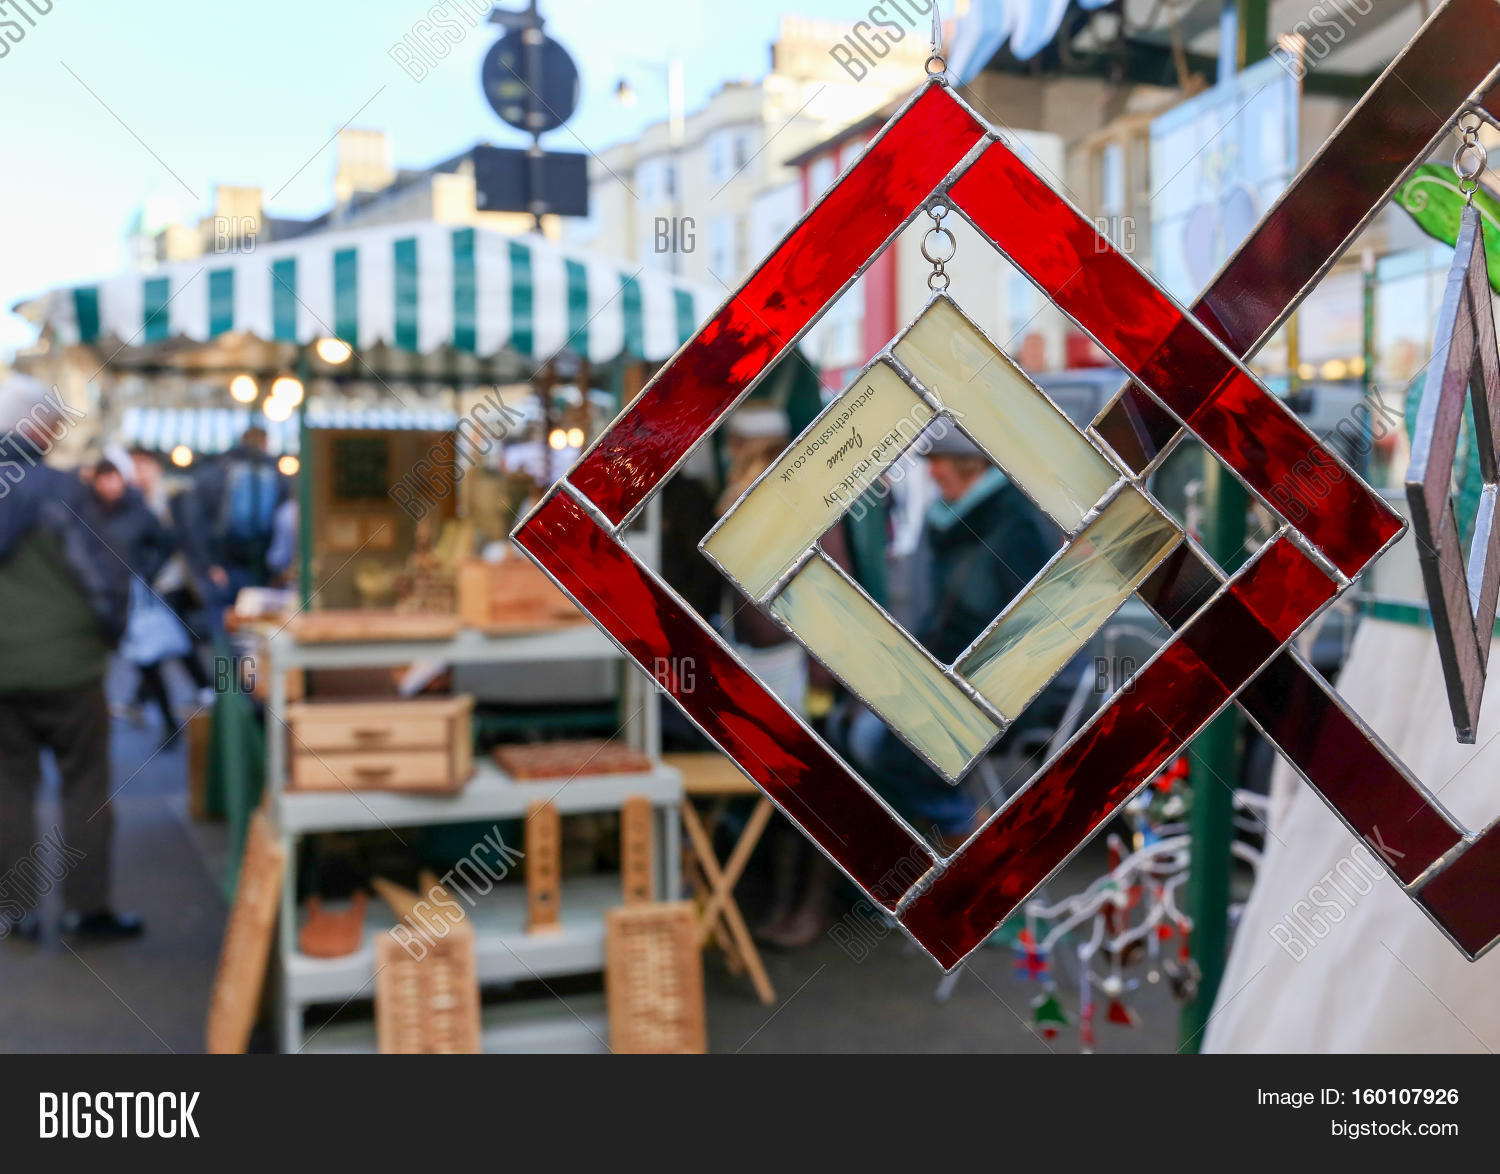 Broad street oxford united kingdom image photo bigstock for Arts and crafts industry